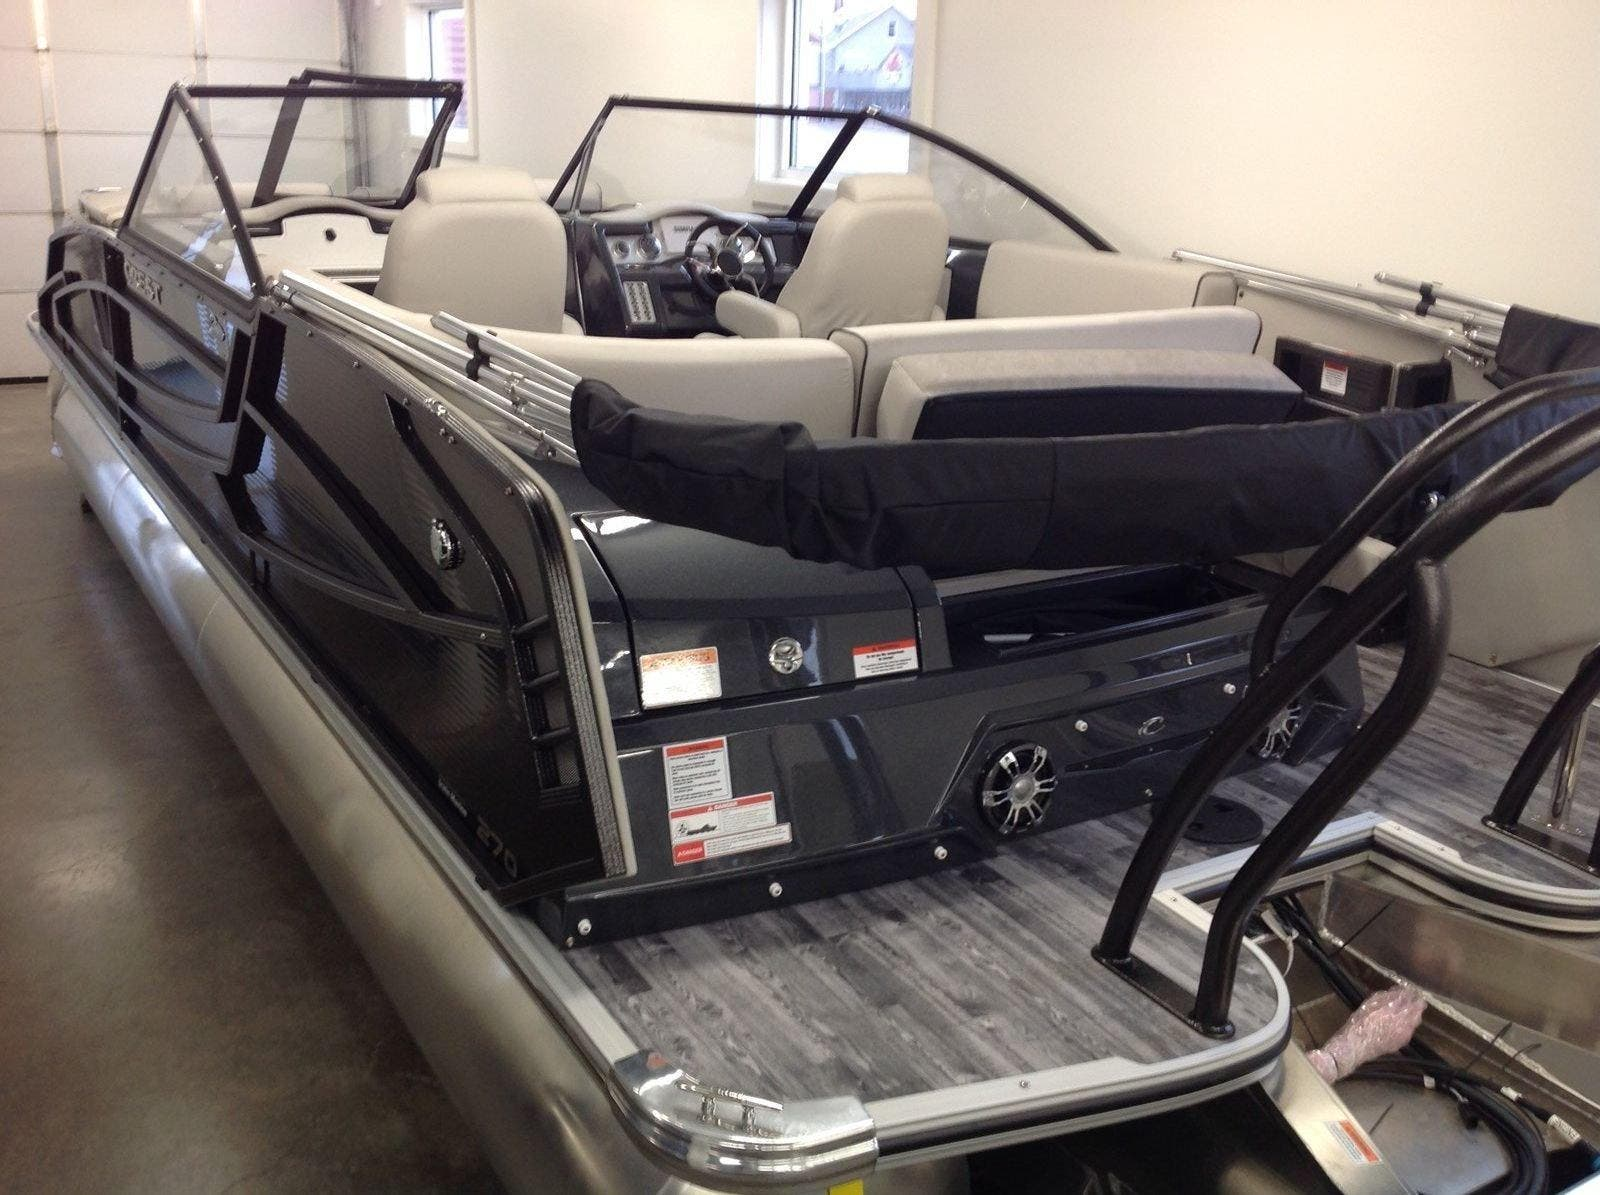 2020 Crest boat for sale, model of the boat is Continental 270sls & Image # 15 of 15